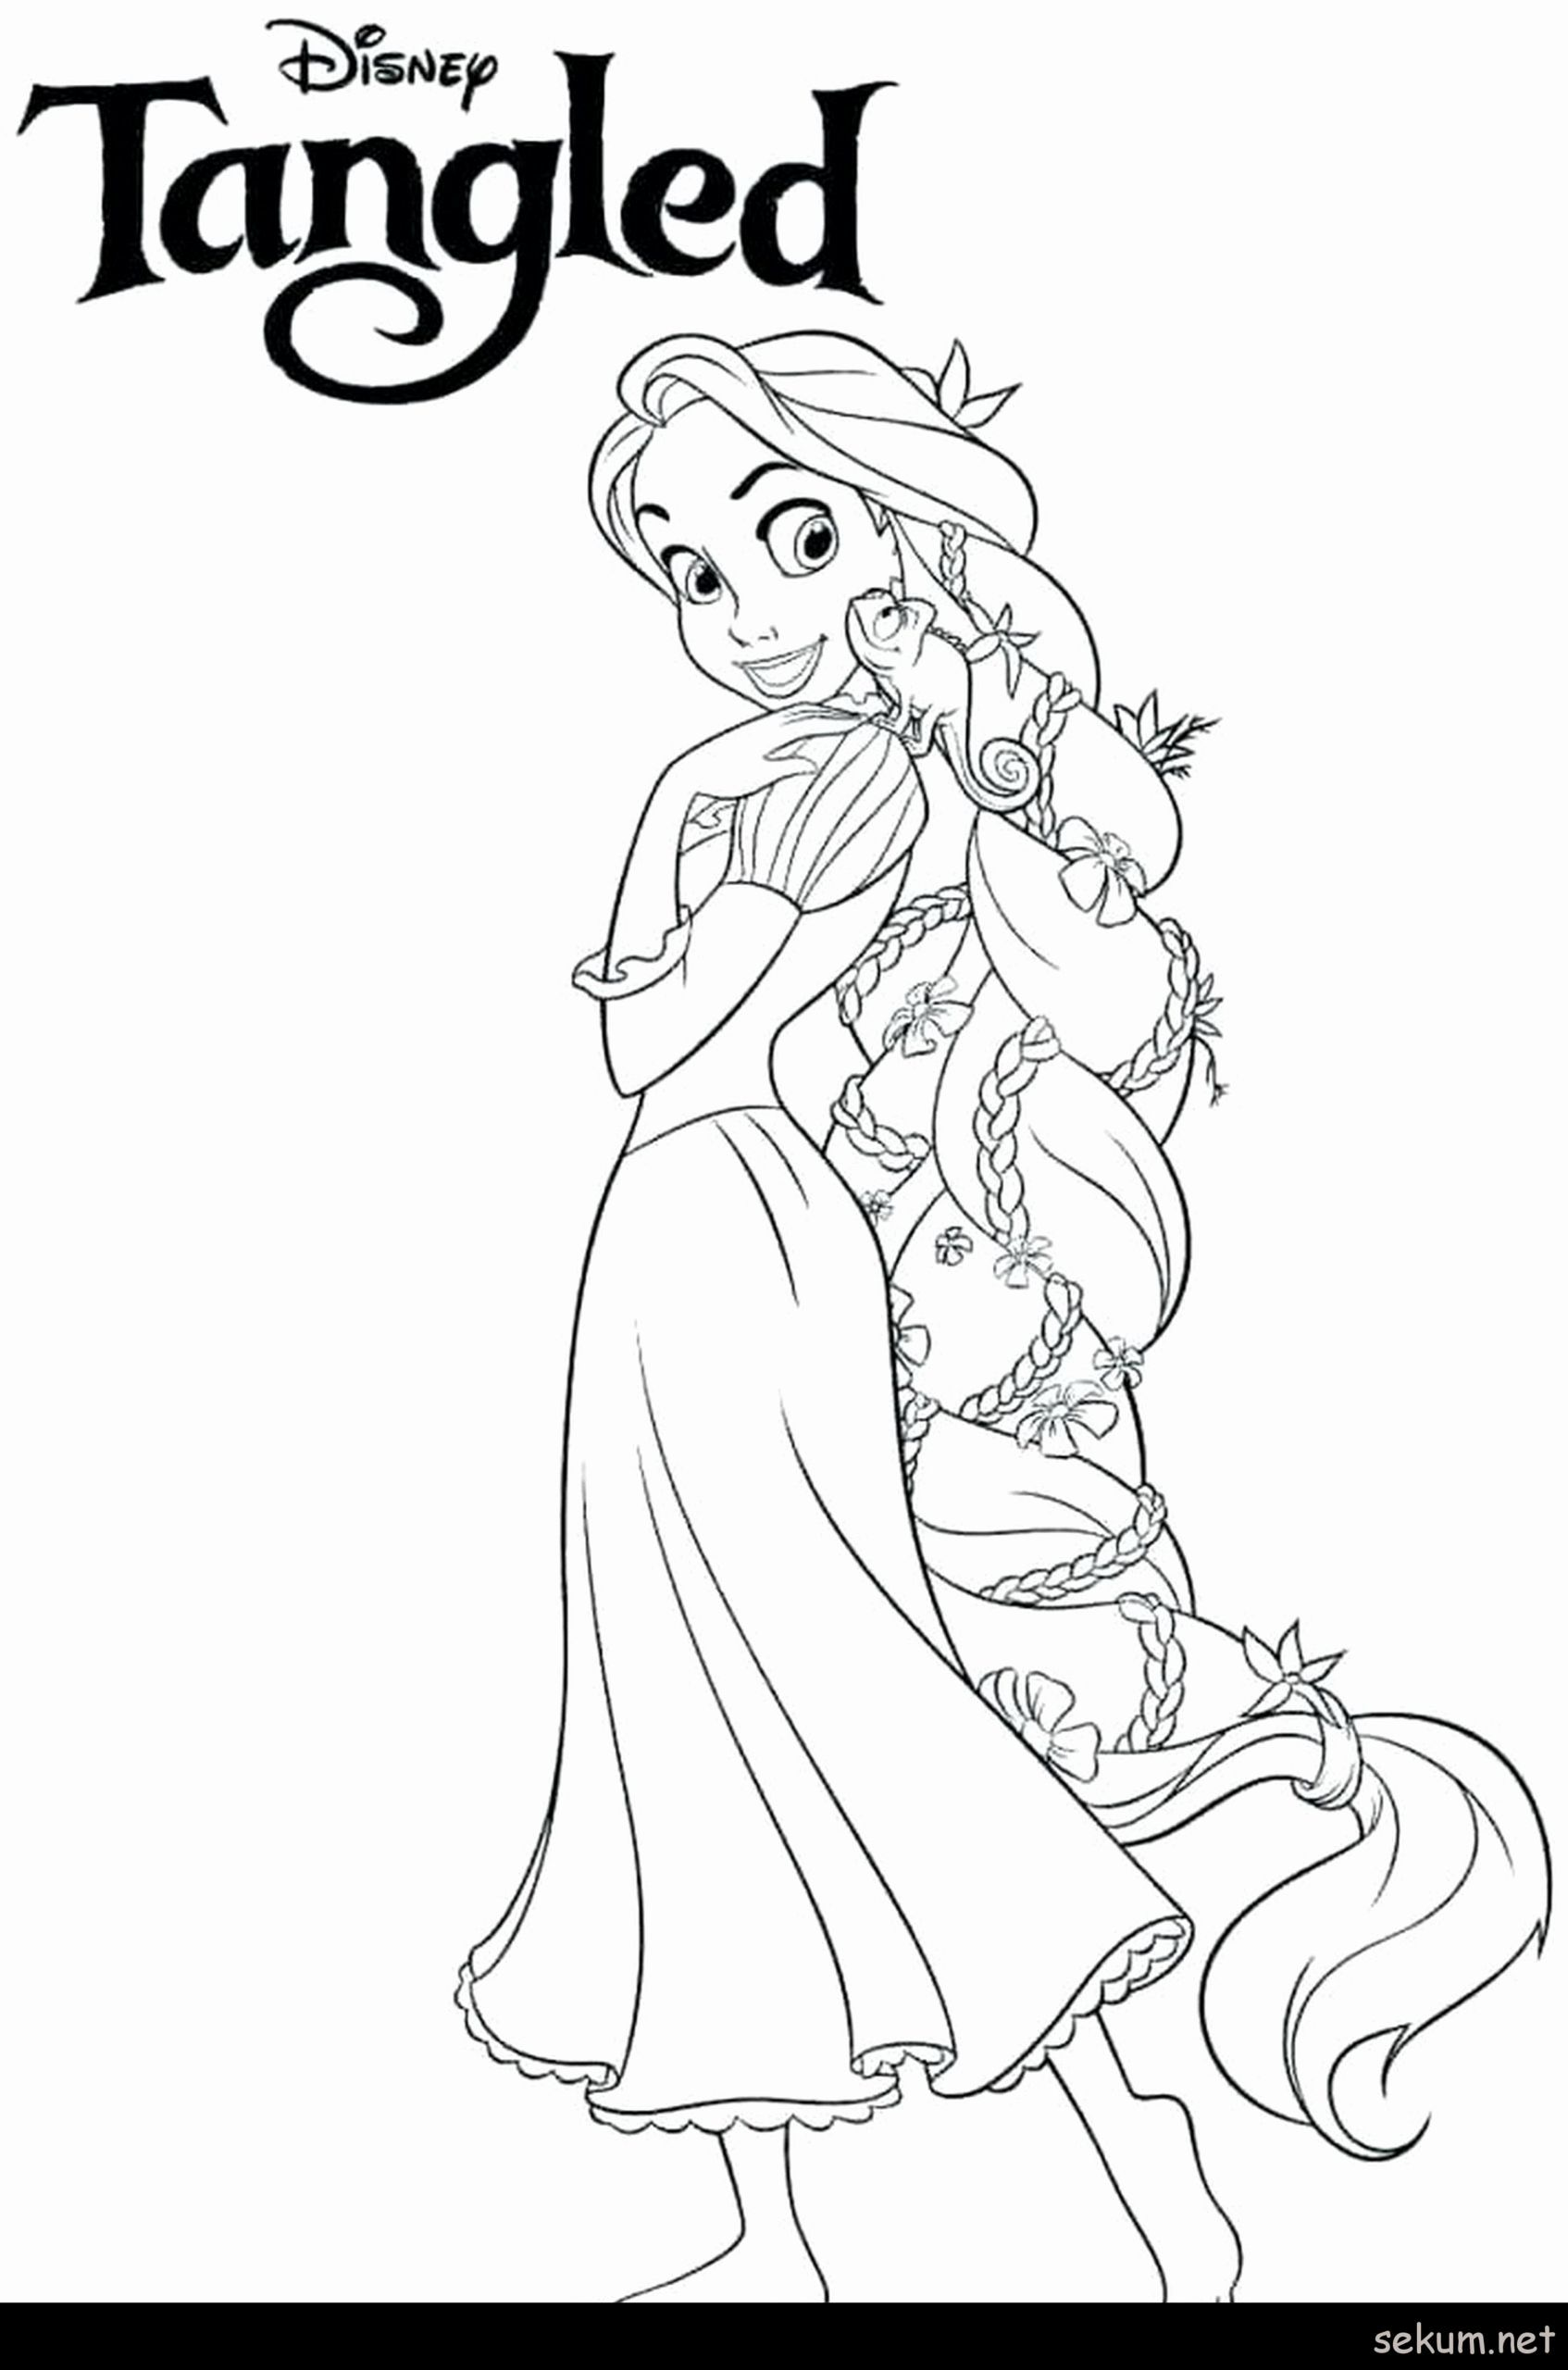 Coloring Pages Disney Princess Free For Kids Coloriage Coloriage Ladybug Coloriage Barbie